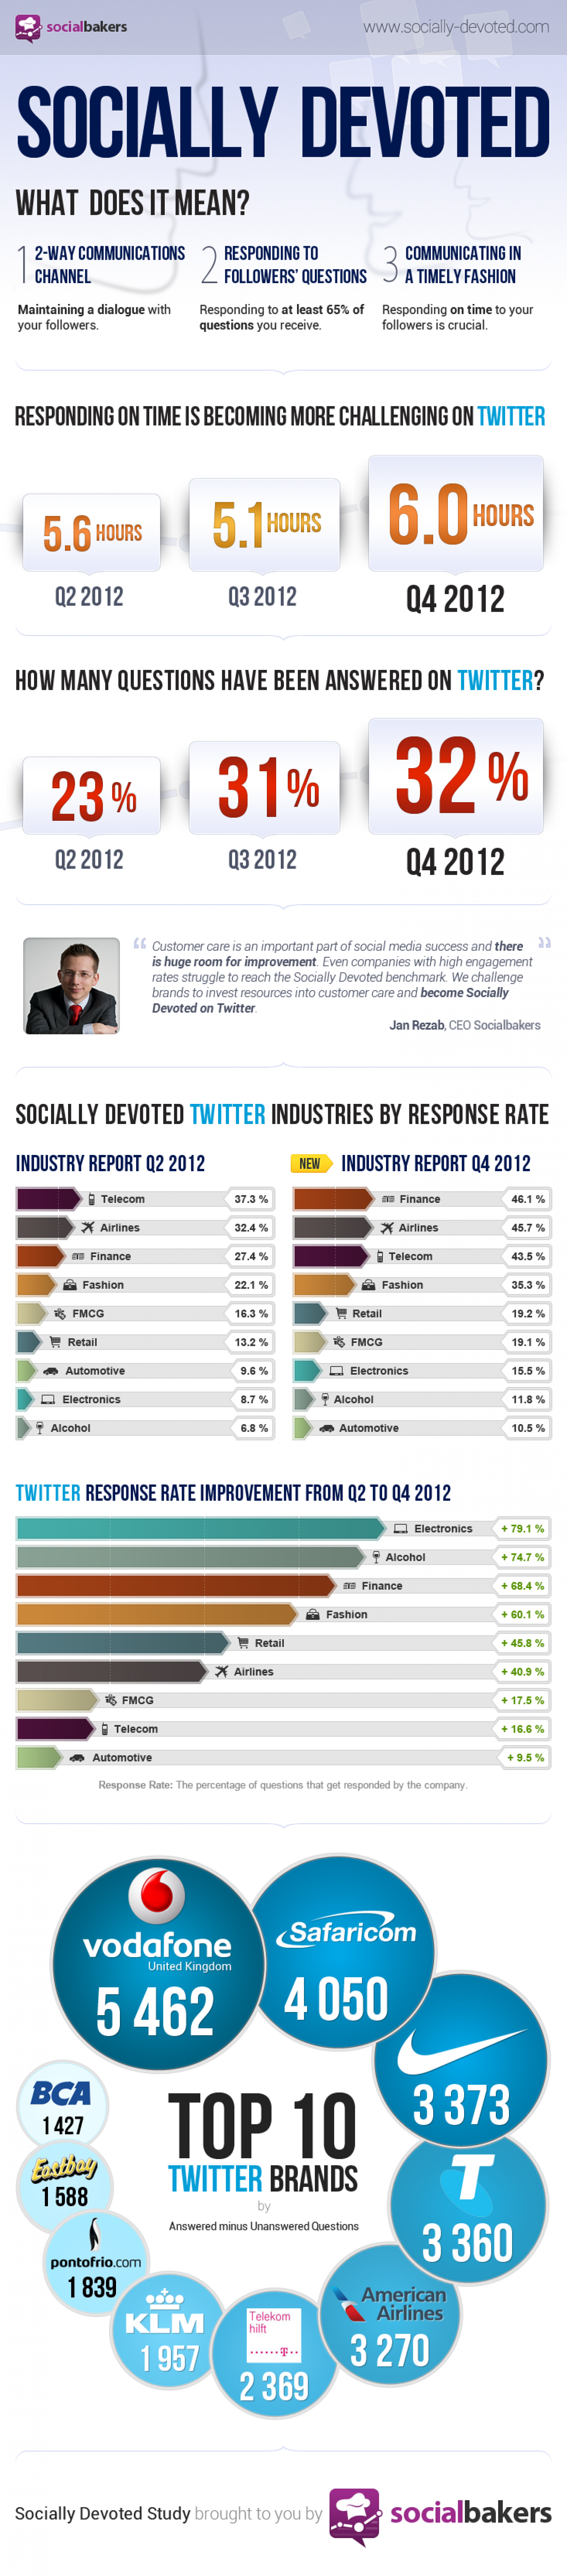 The Most Socially Devoted Industries on Twitter Infographic